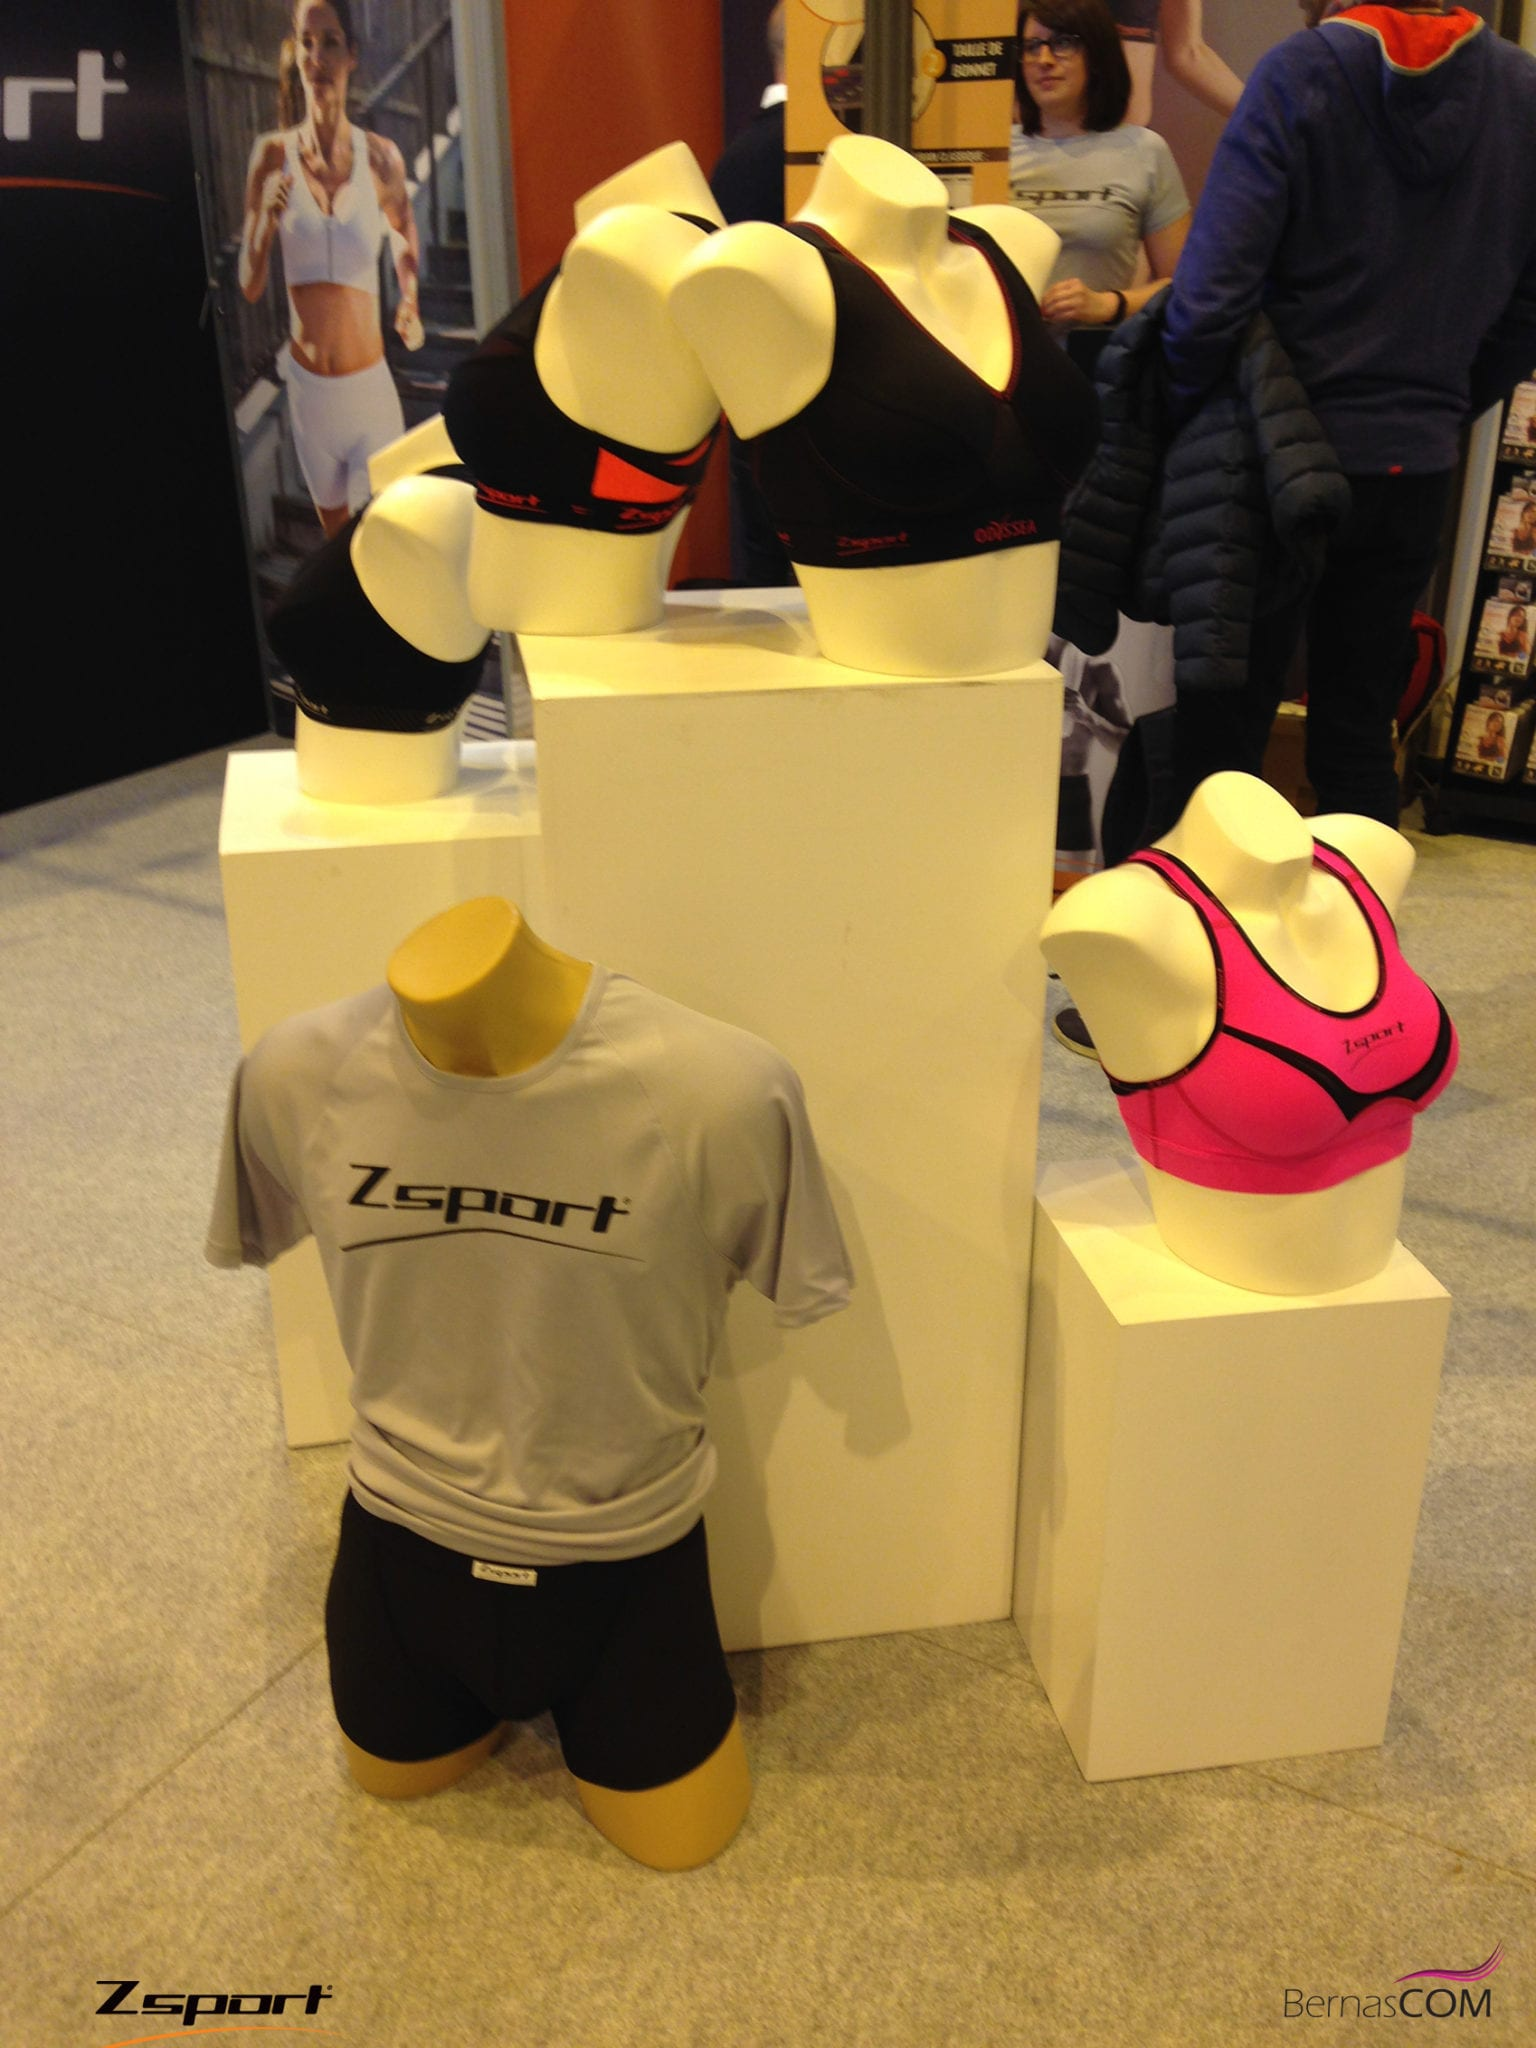 salon-du-running-zsport02